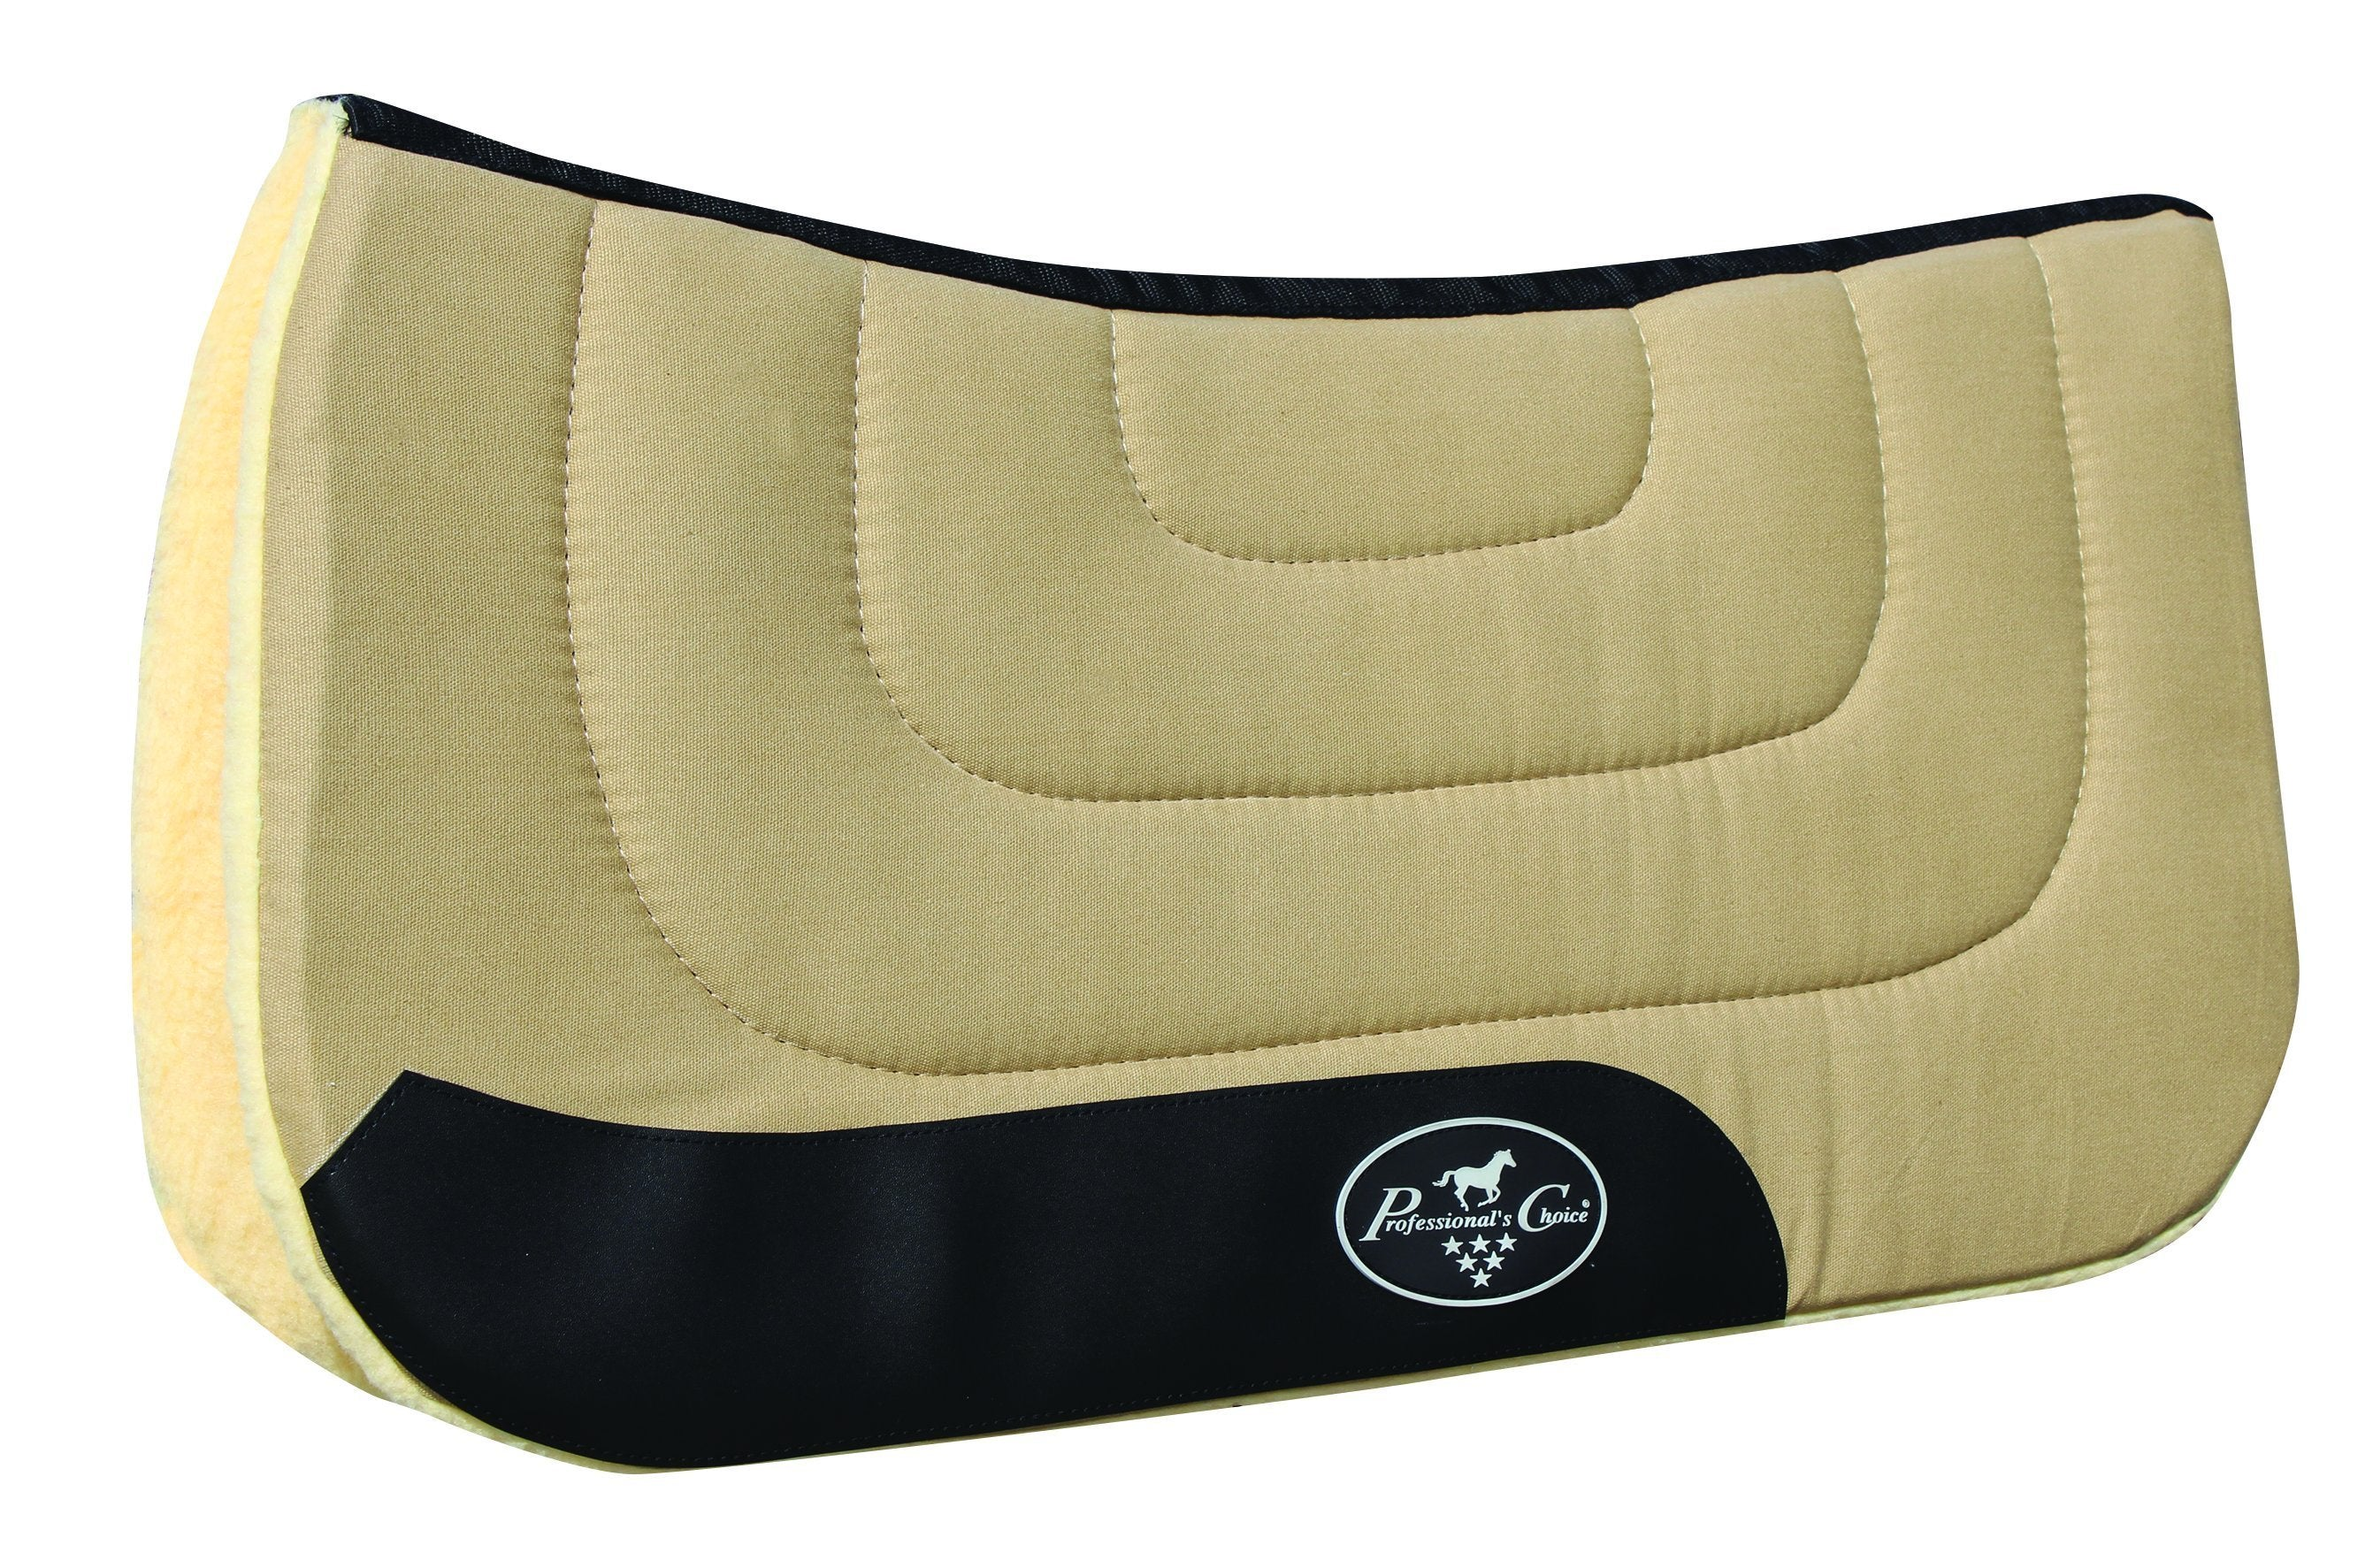 Professional's Choice Comfort Fit Contoured Work Pad - Animal Health Express